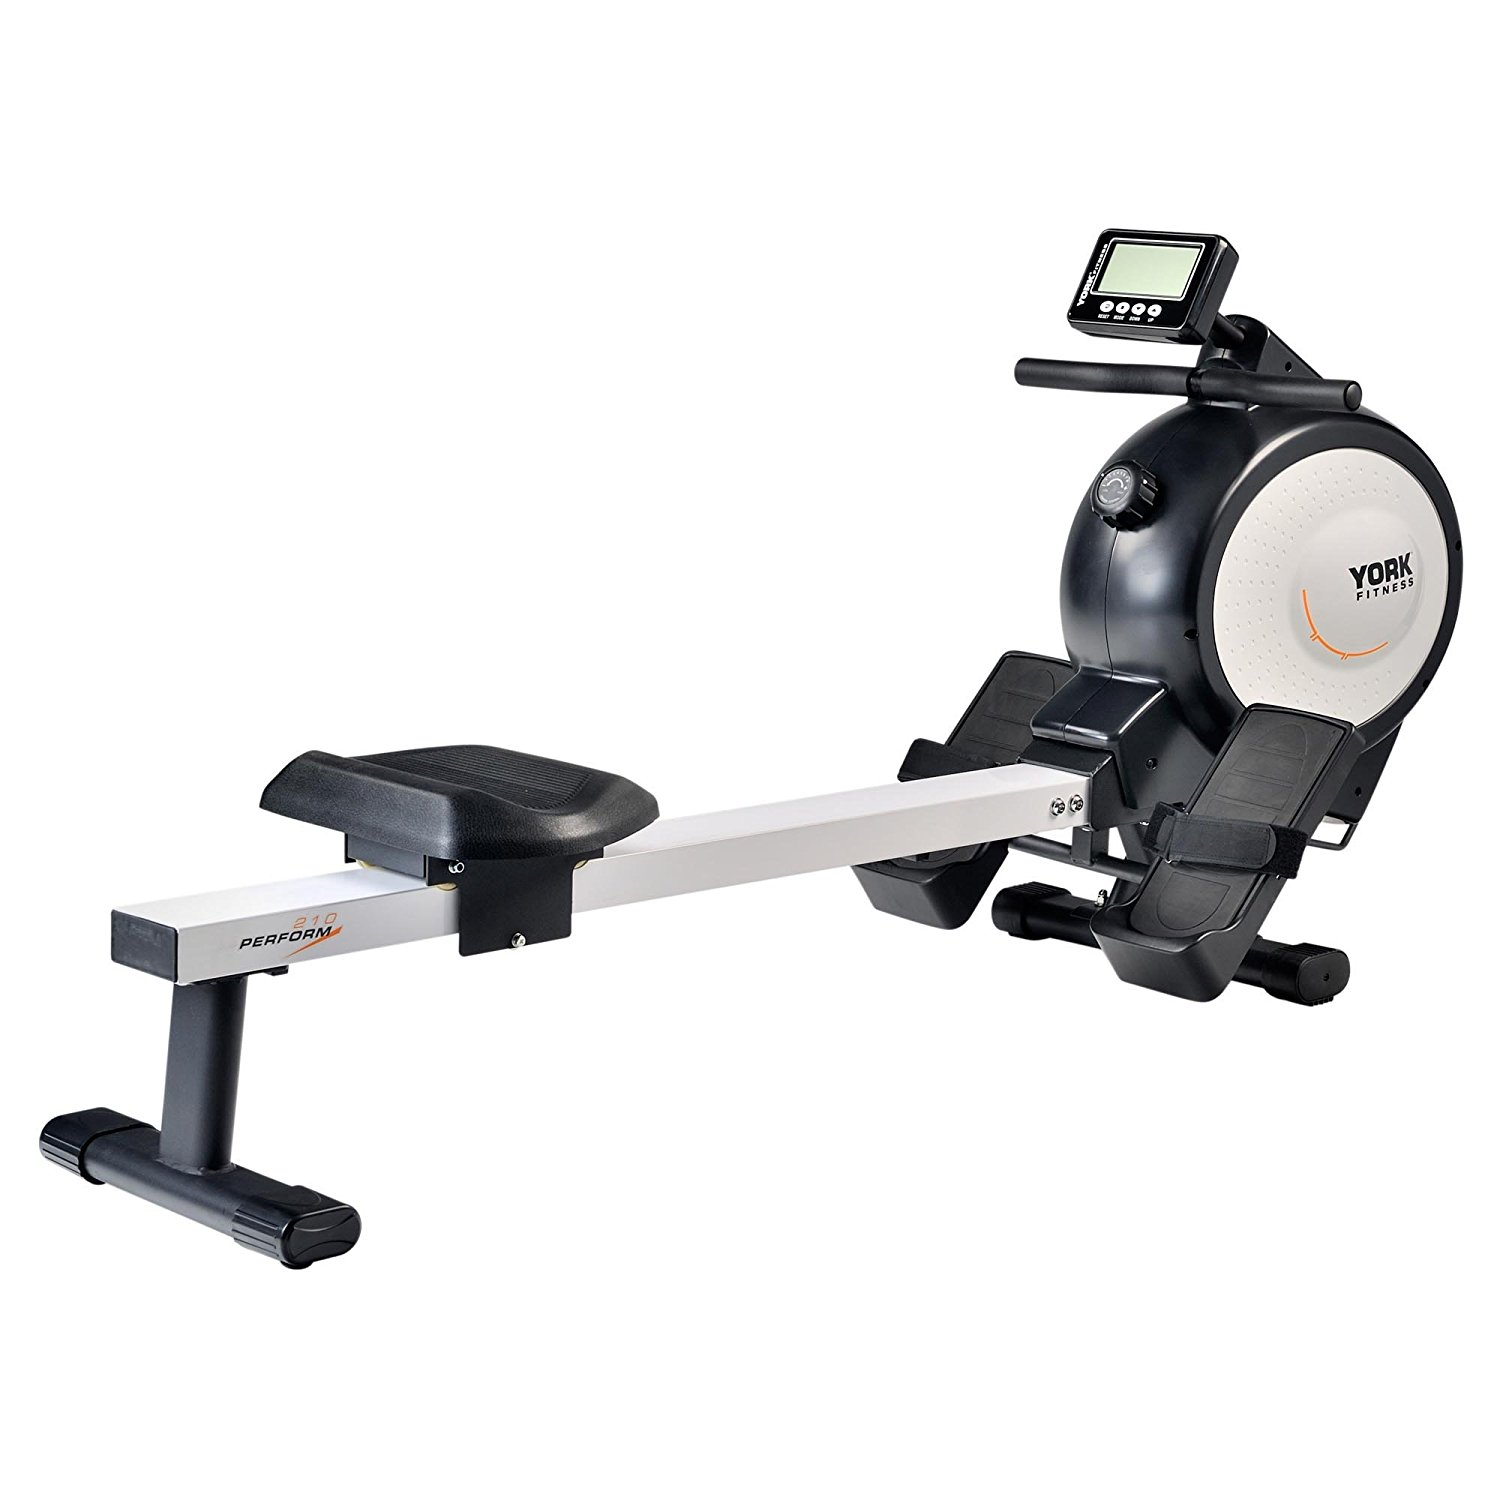 York Perform 210 Rowing Machine Review